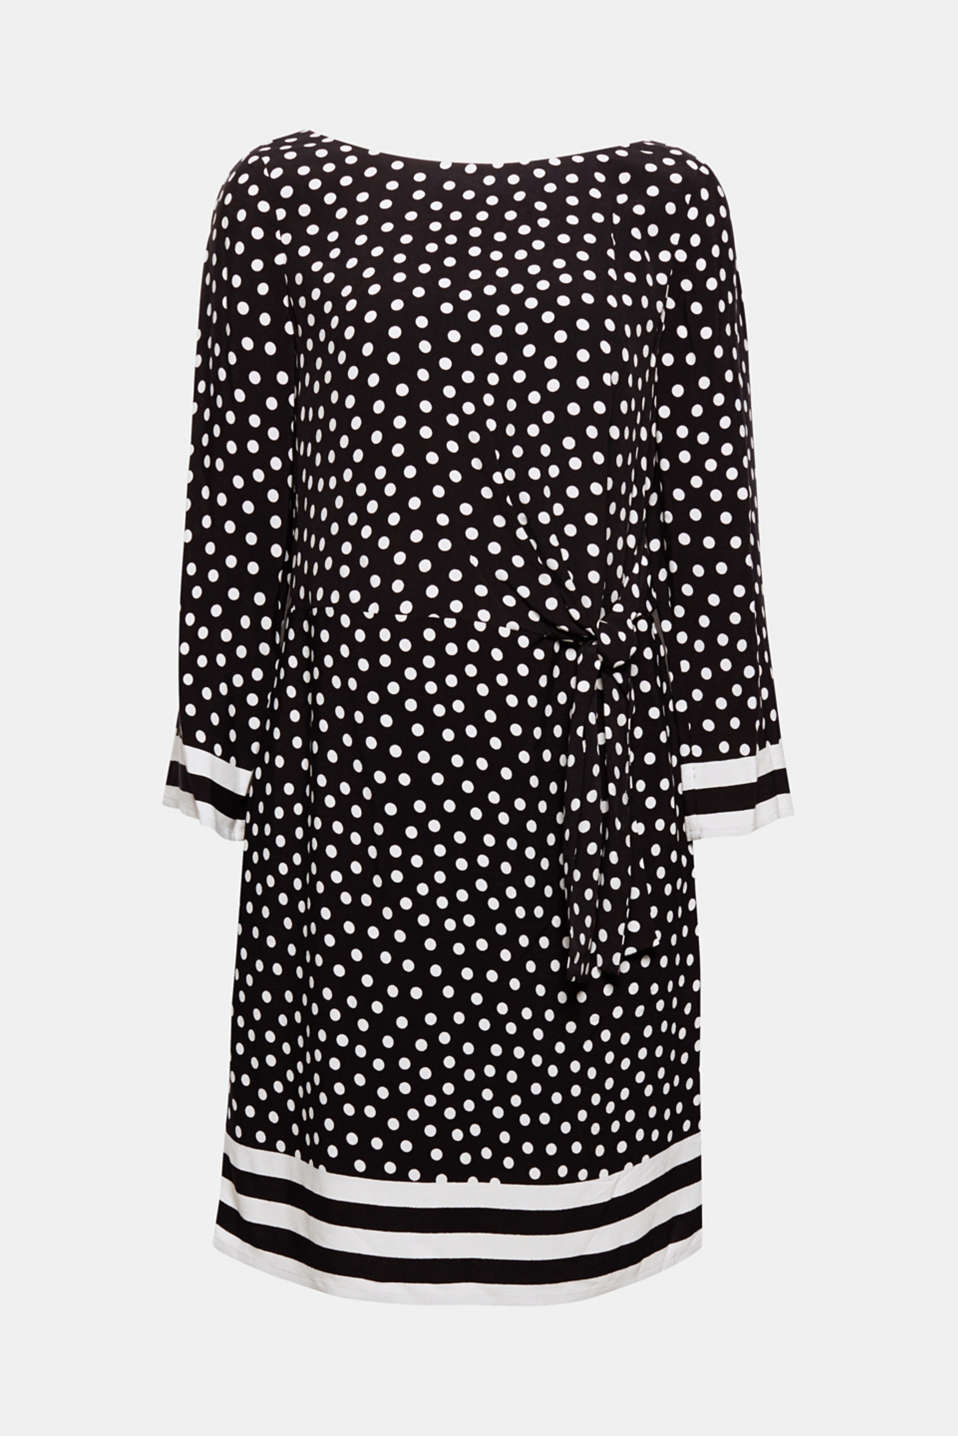 This dress with a polka dot print and striped accents looks particularly flattering and feminine thanks to the side bow details!